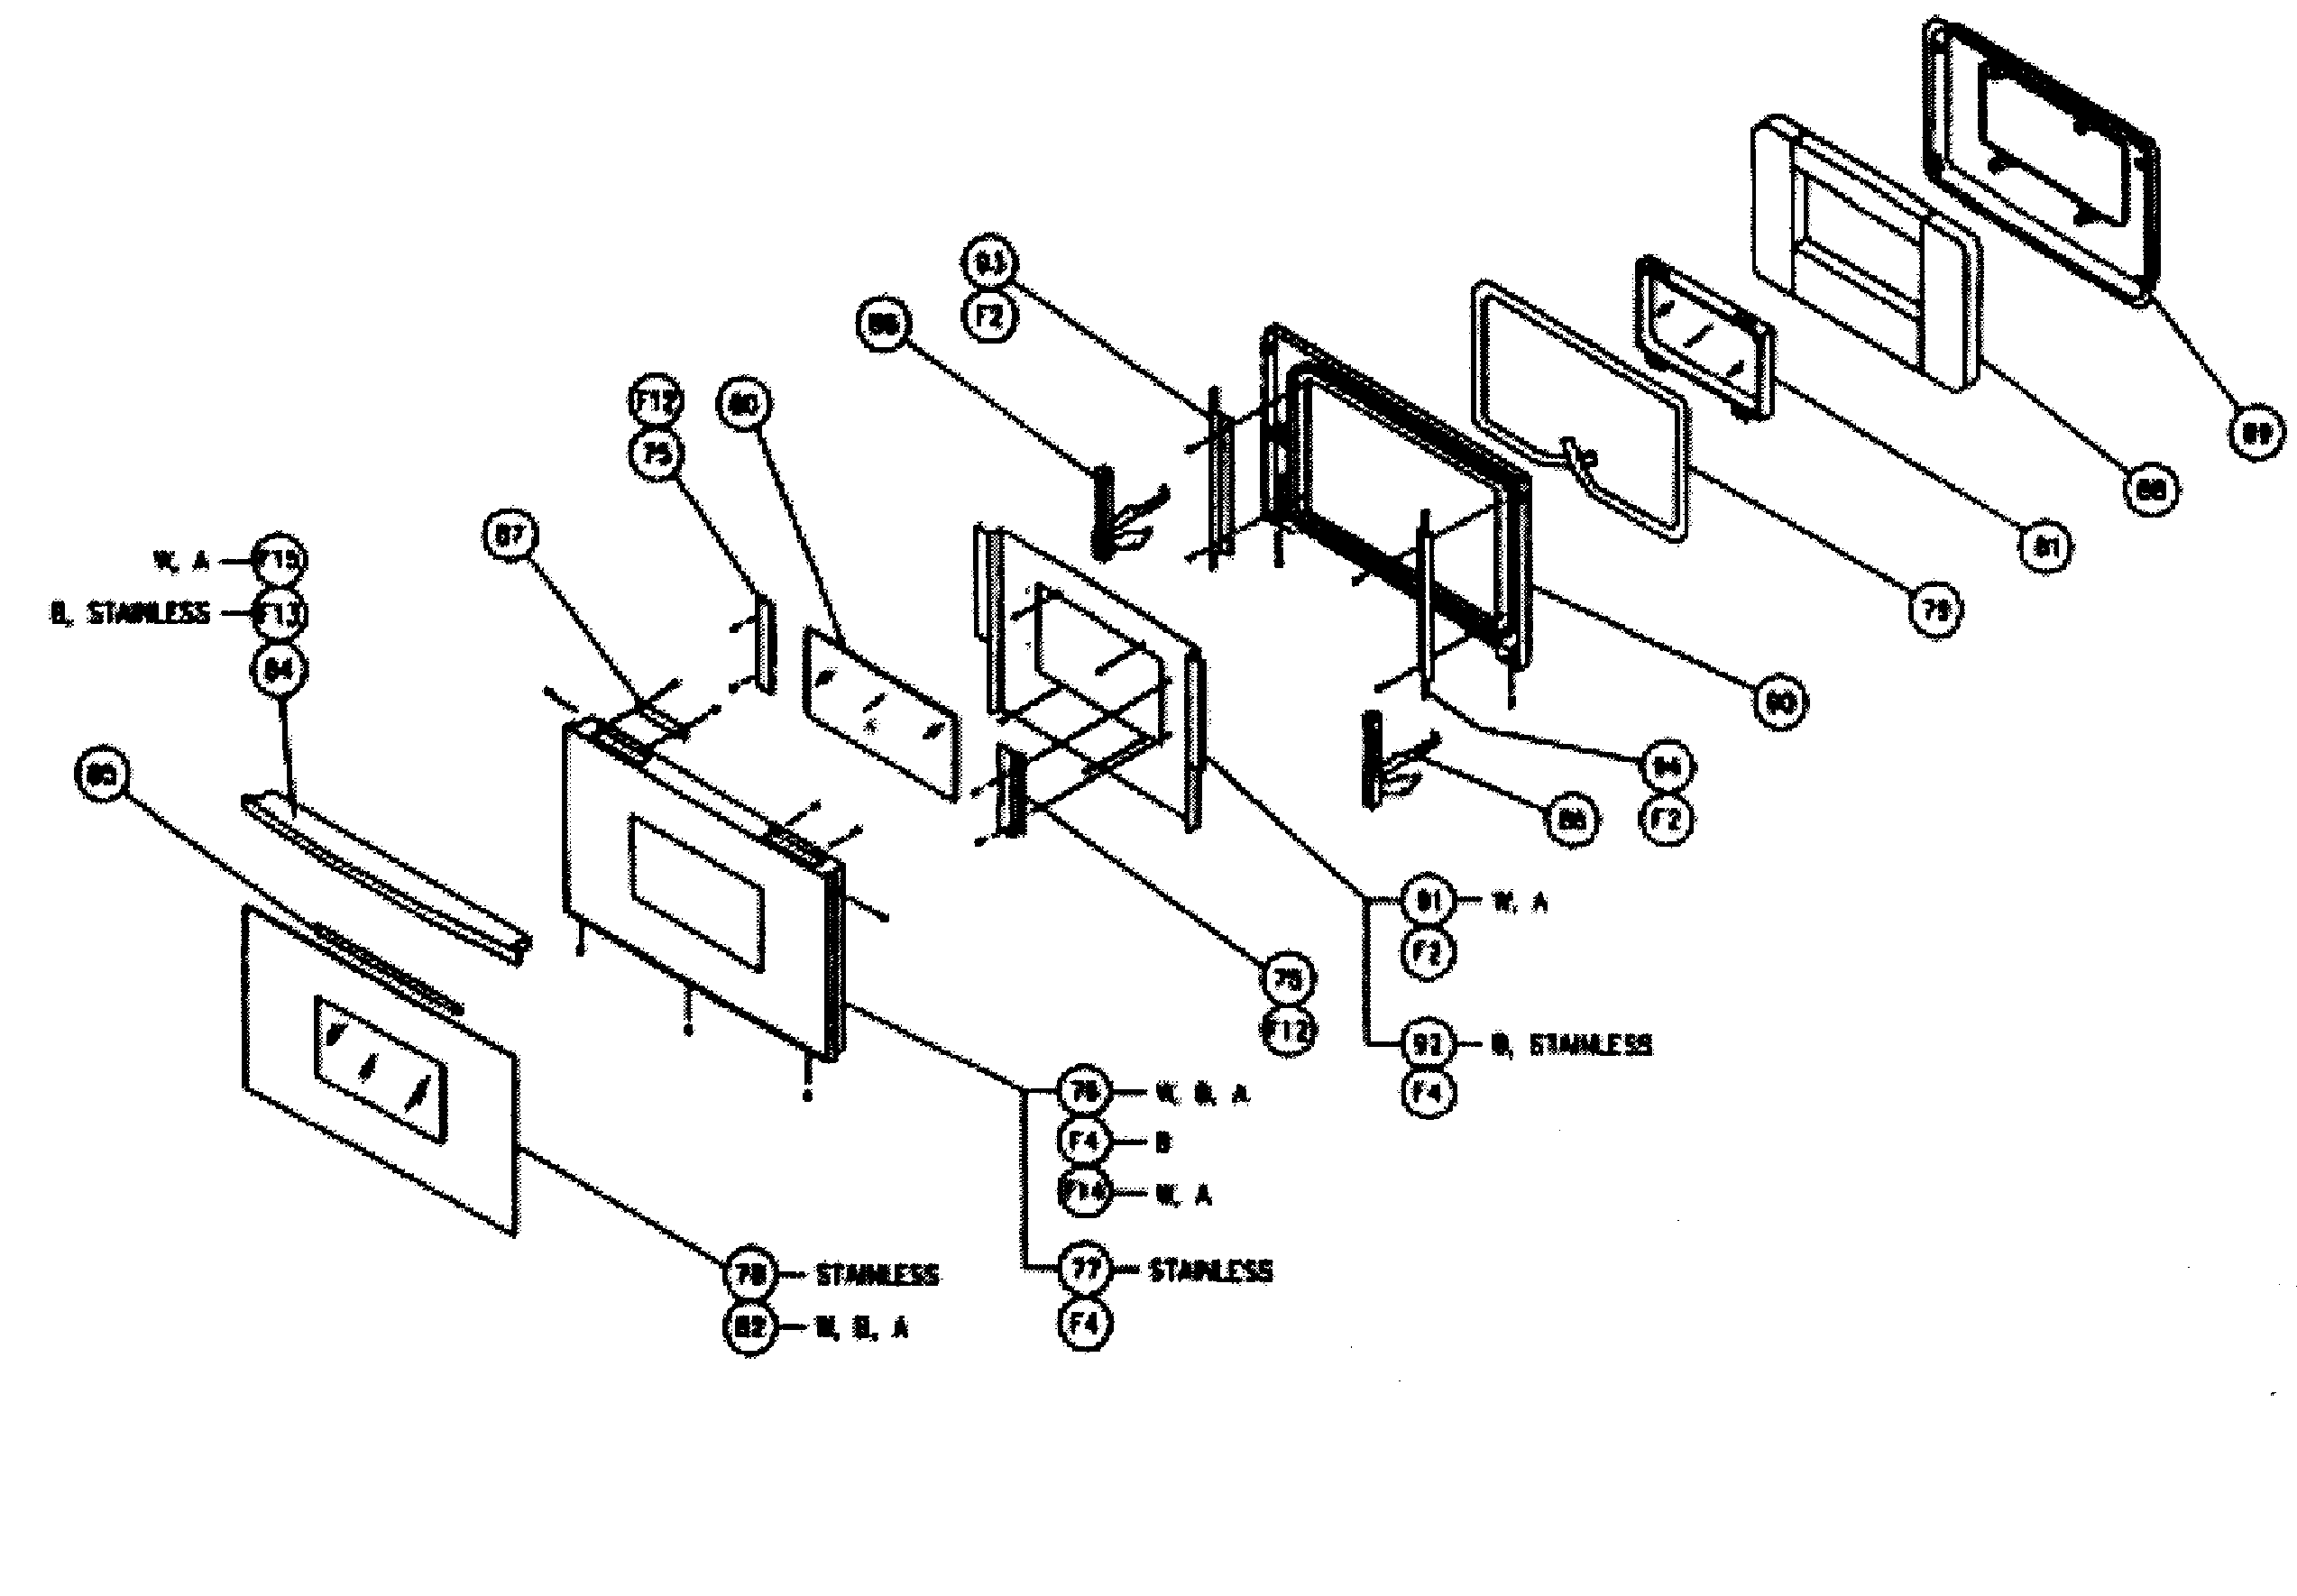 kenmore wall oven wiring diagram [ 2547 x 1770 Pixel ]